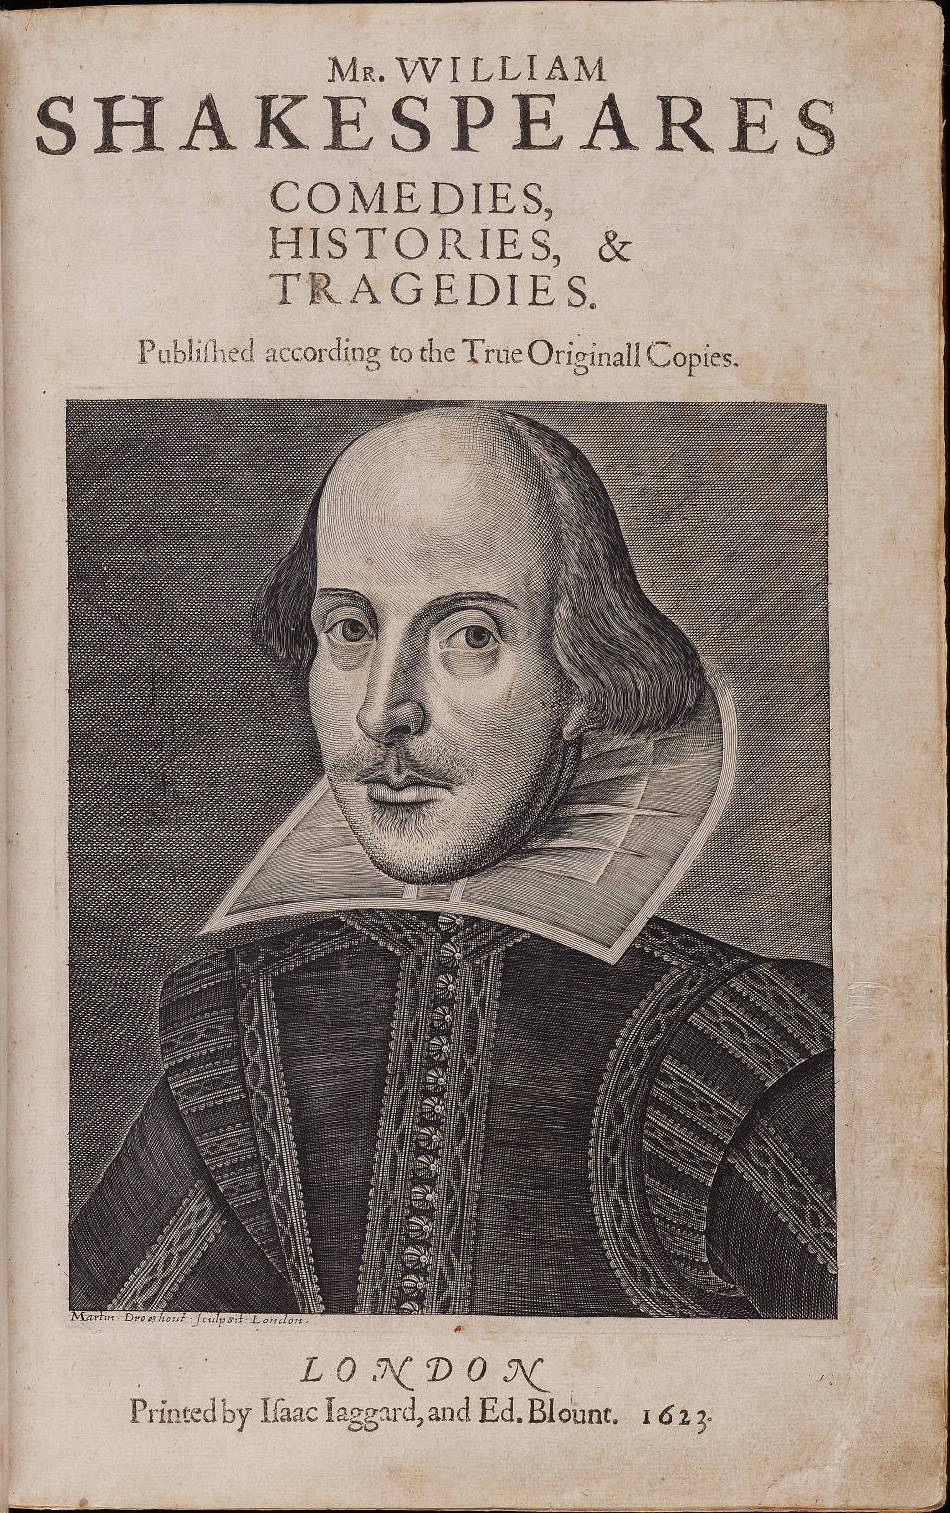 Phlit: A Newsletter on Philosophy and Literature: The Shakespeare